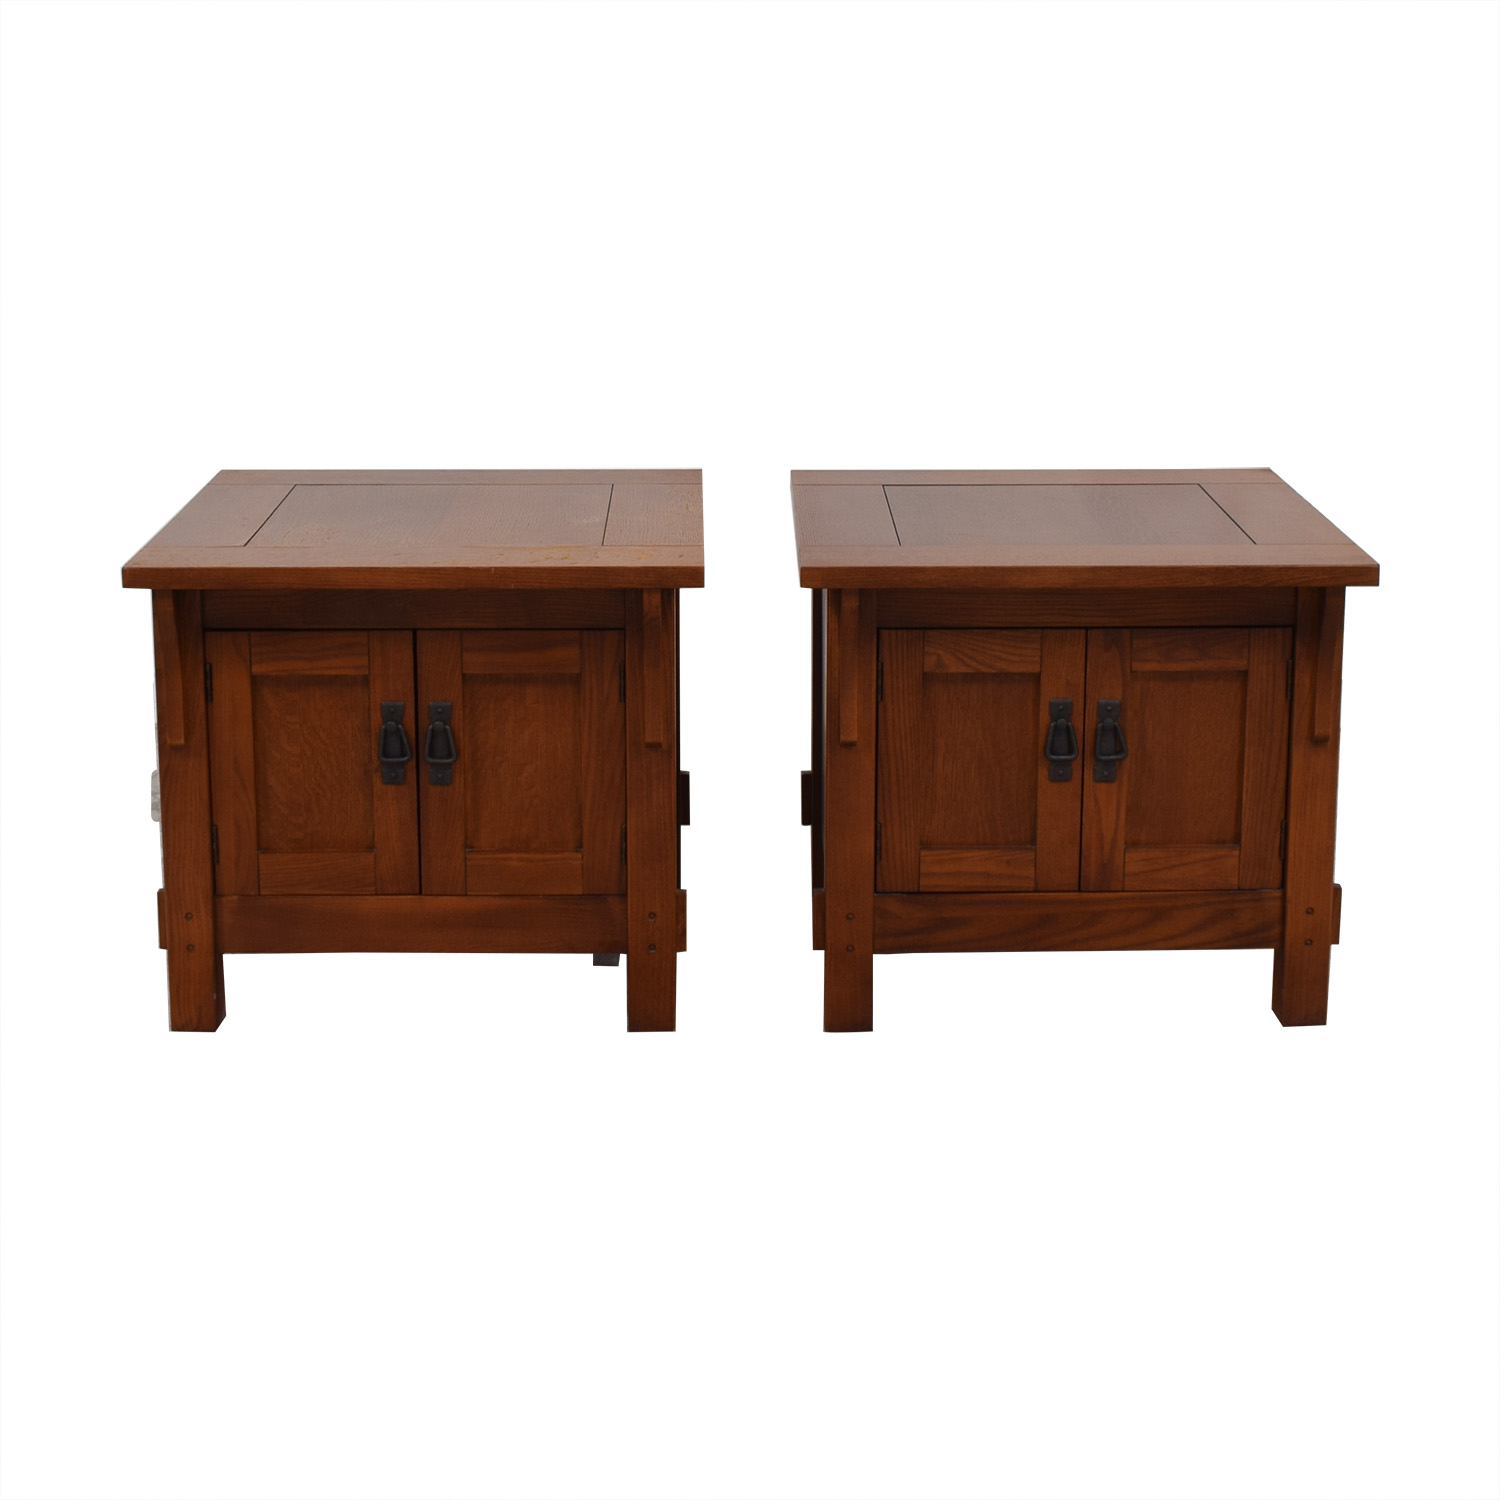 Wood Storage End Tables used